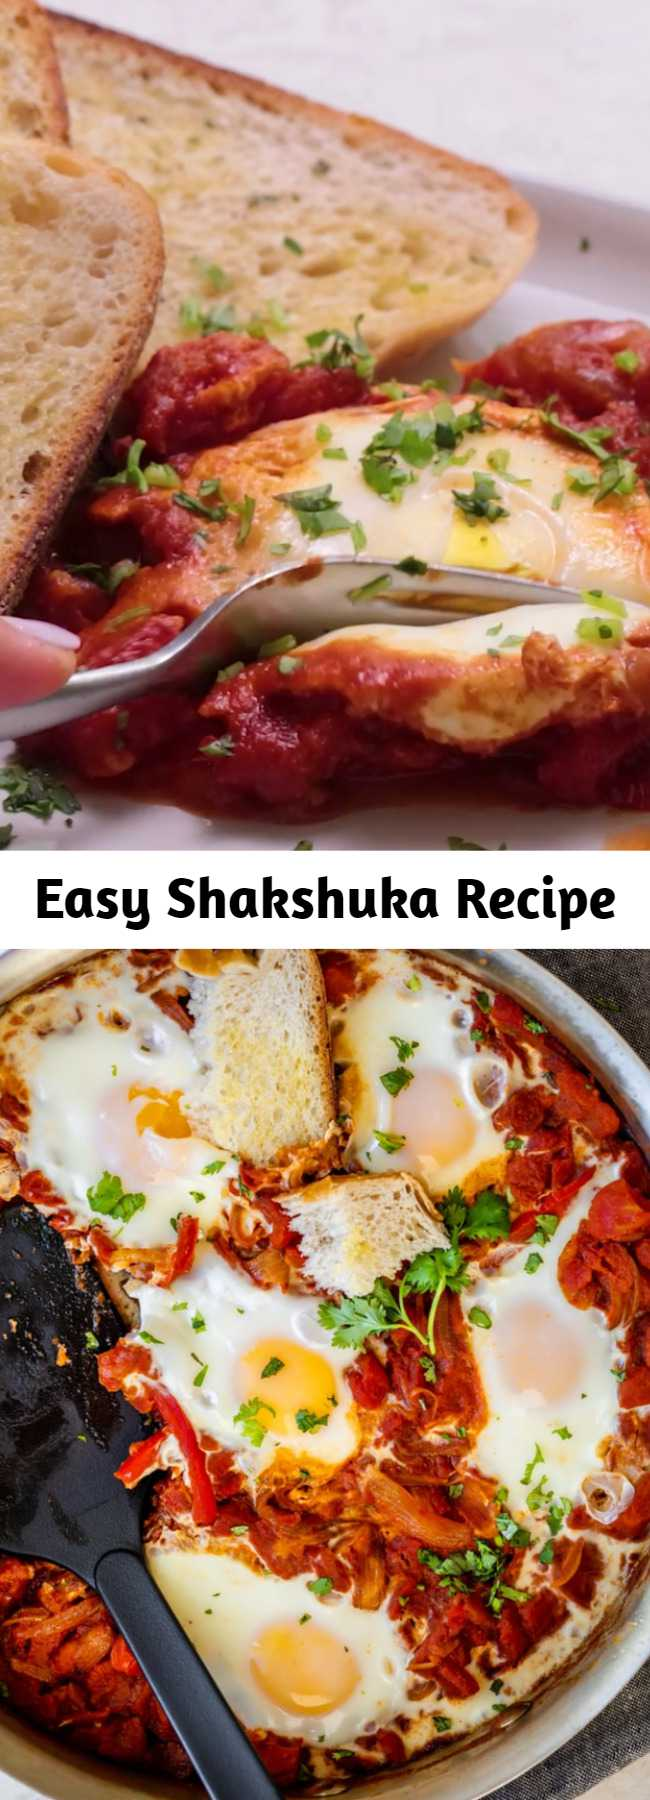 Easy Shakshuka Recipe - This Shakshuka Recipe is a popular Middle Eastern breakfast that is basically poached eggs in a spicy tomato sauce - it's vegetarian, easy and healthy! #breakfast